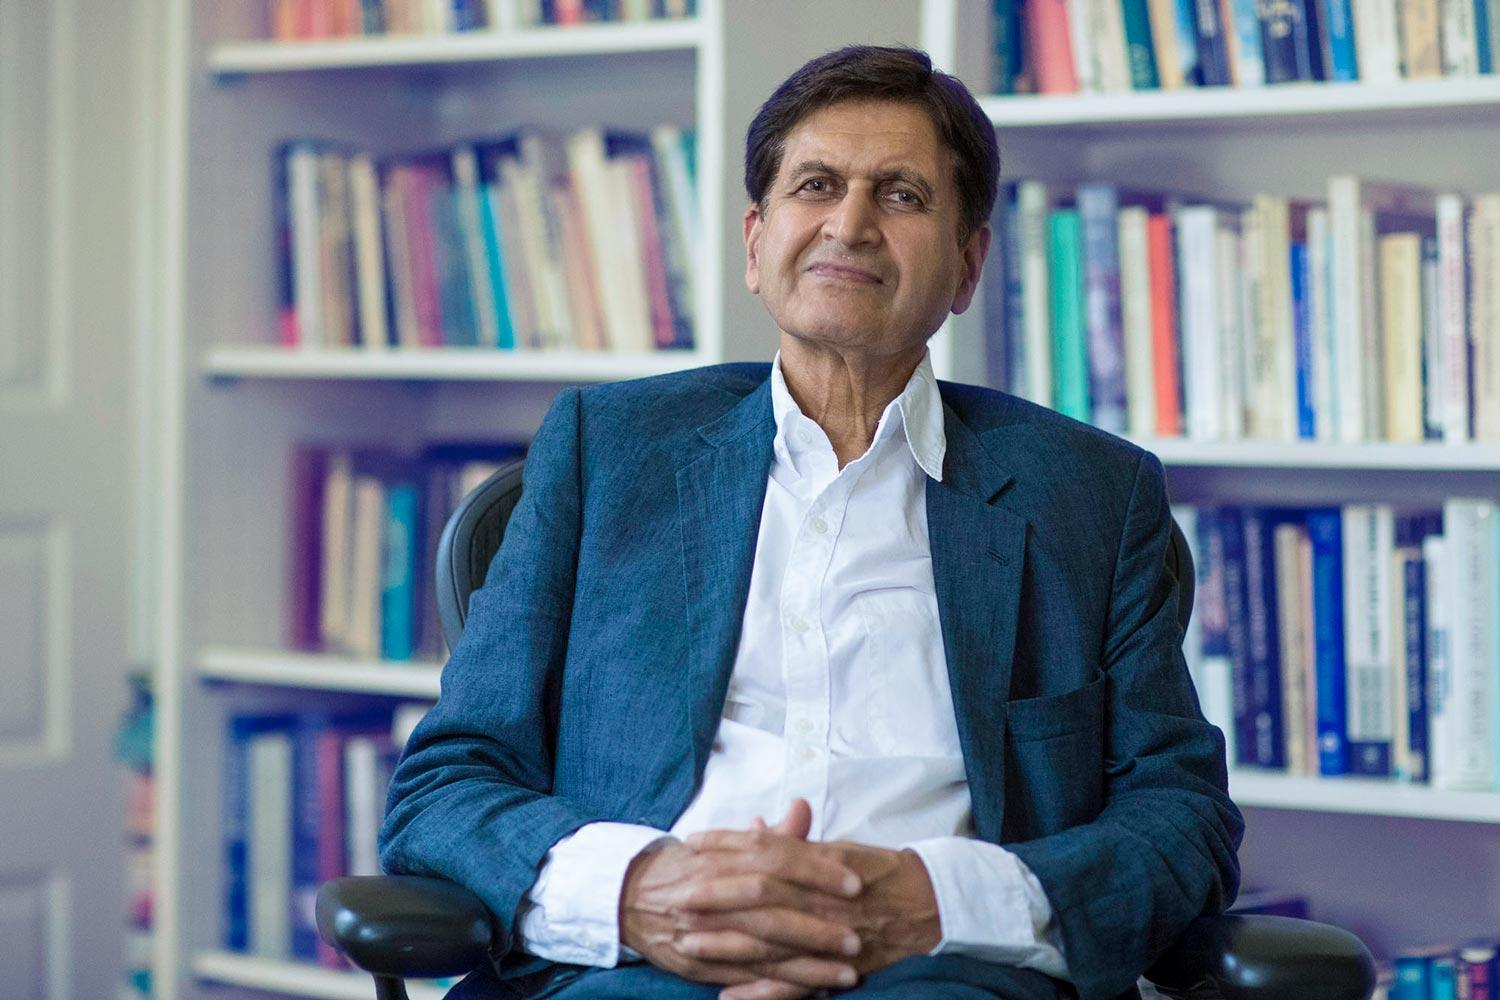 Krishan Kumar, University Professor and William R. Kenan Jr. Professor of Sociology, taught at the University of Kent in England for 20 years before coming to UVA in 1996. (Photo by Dan Addison, University Communications)